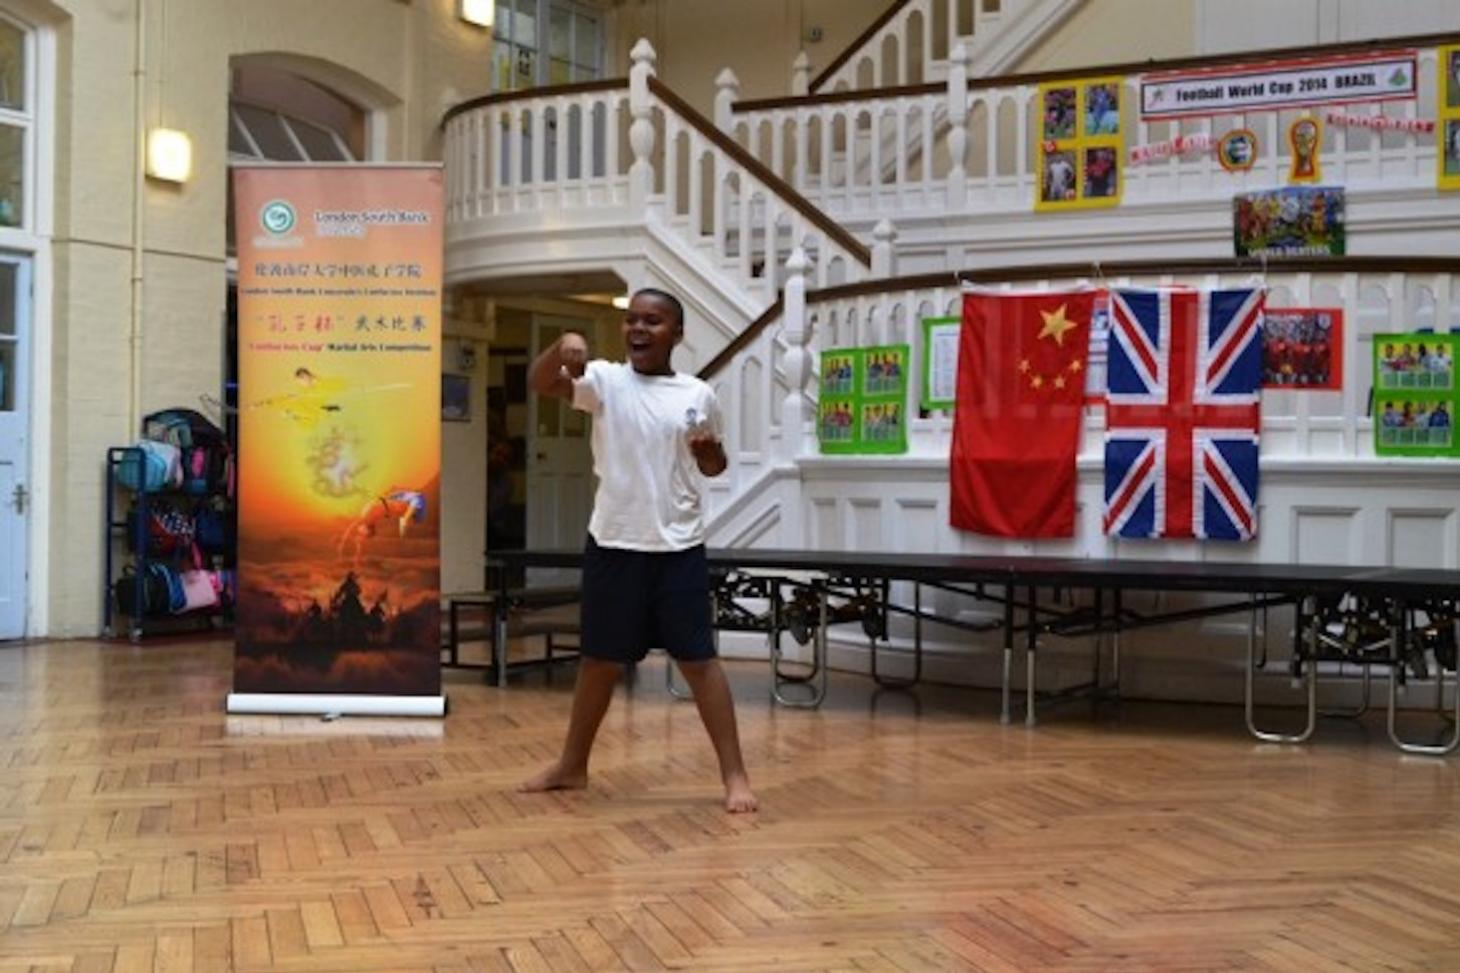 Fircroft Primary School boy's performance in martial arts competition